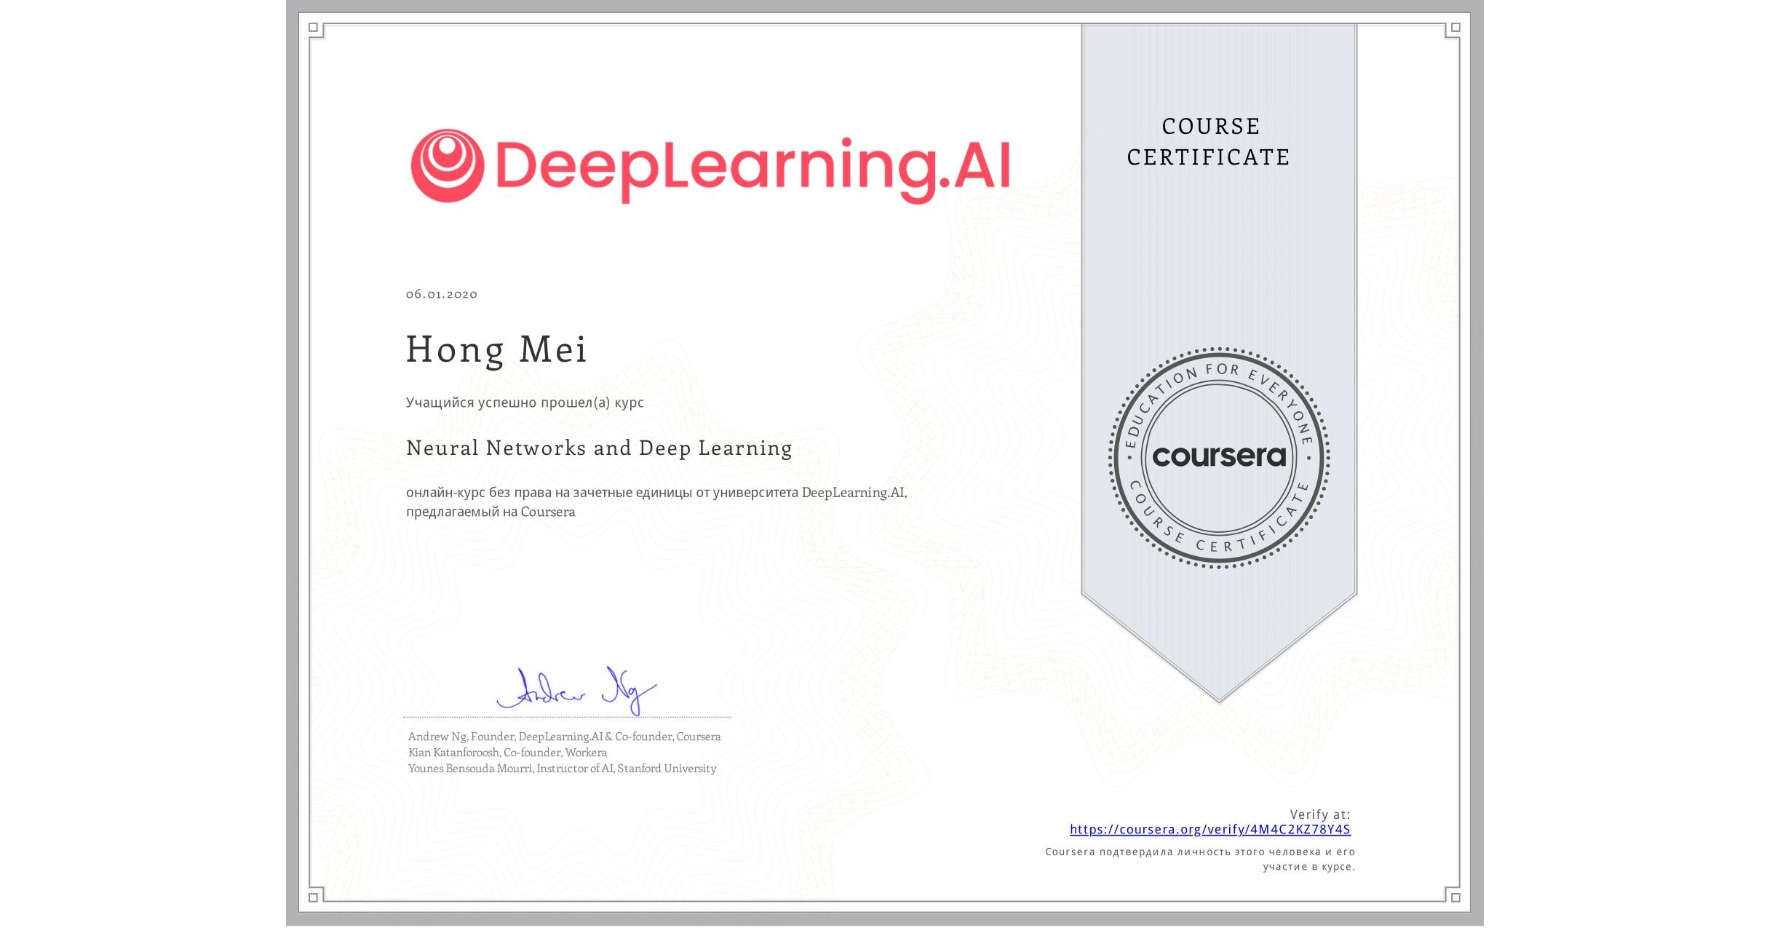 View certificate for Hong Mei, Neural Networks and Deep Learning, an online non-credit course authorized by DeepLearning.AI and offered through Coursera